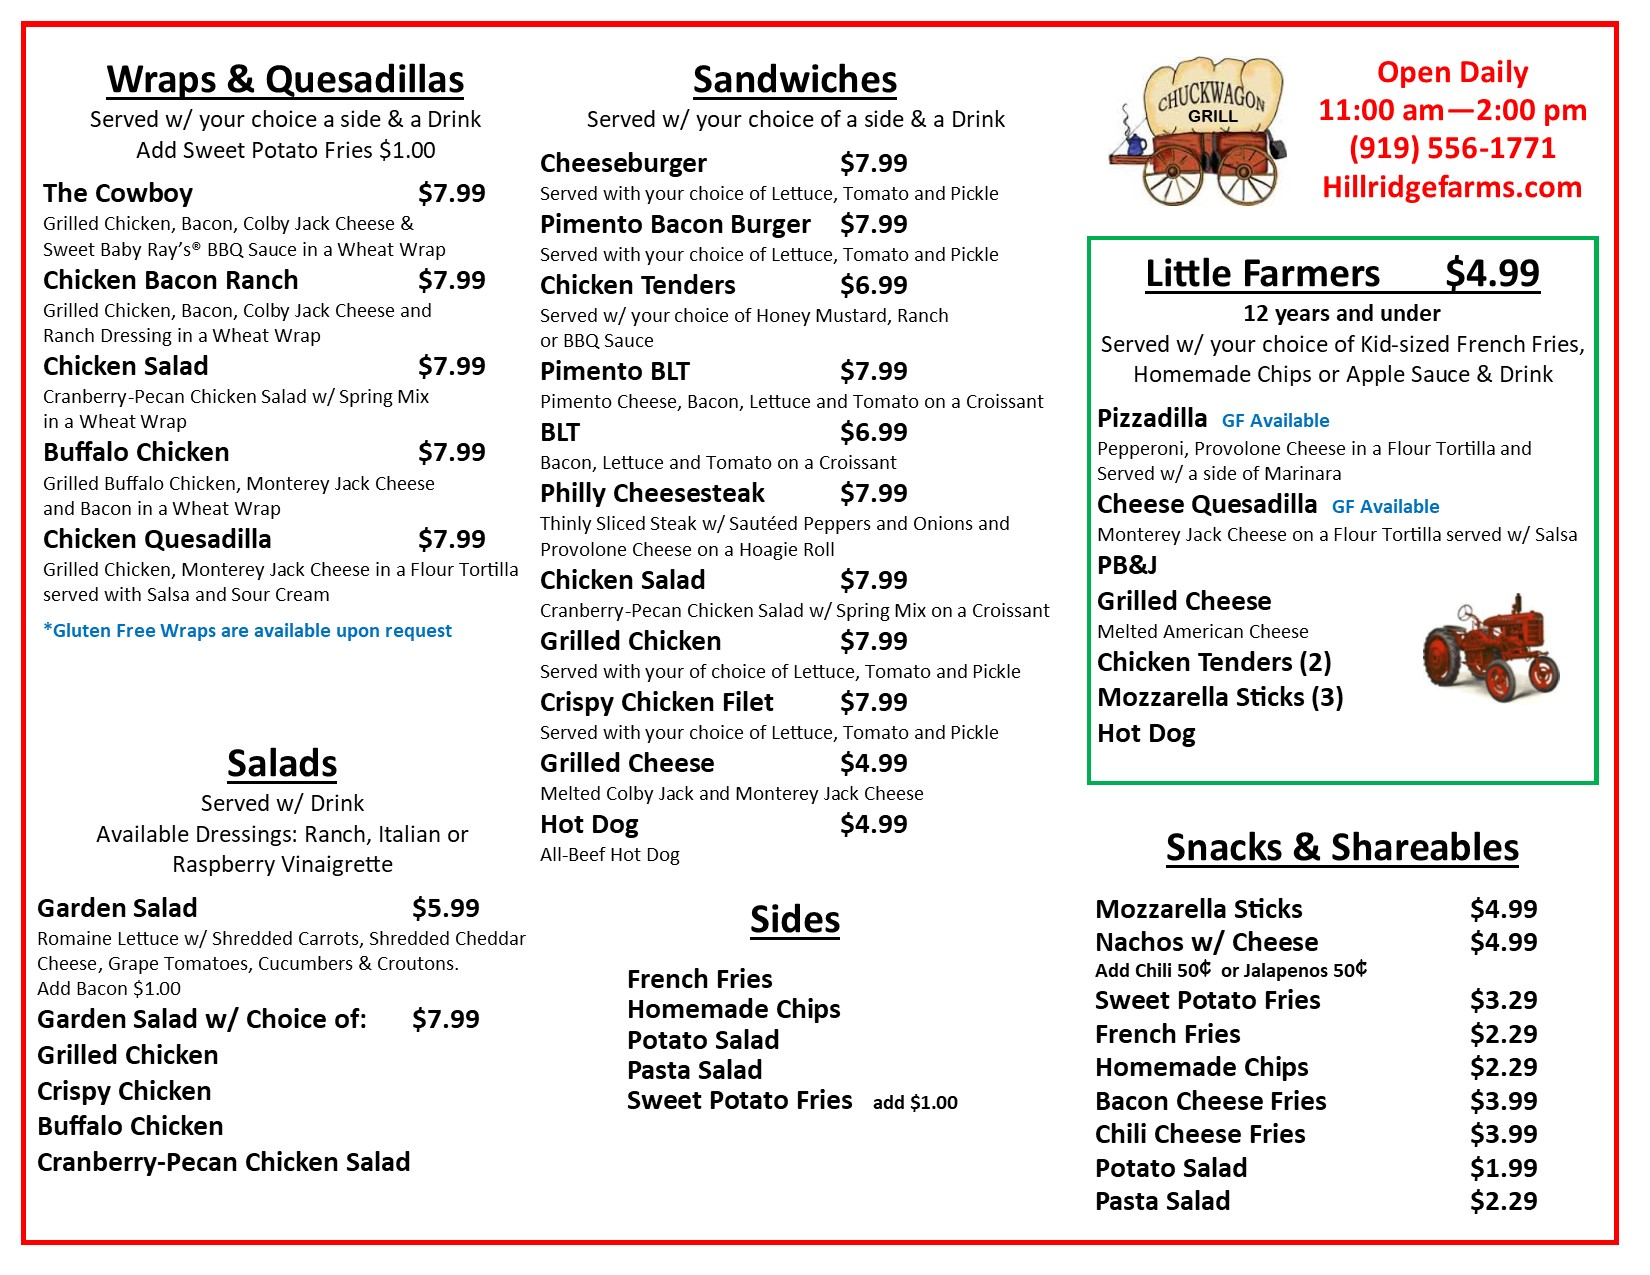 http://www.hillridgefarms.com/cutenews/data/upimages/Chuckwagon_Grill_Menu_-_Spring.pub.jpg